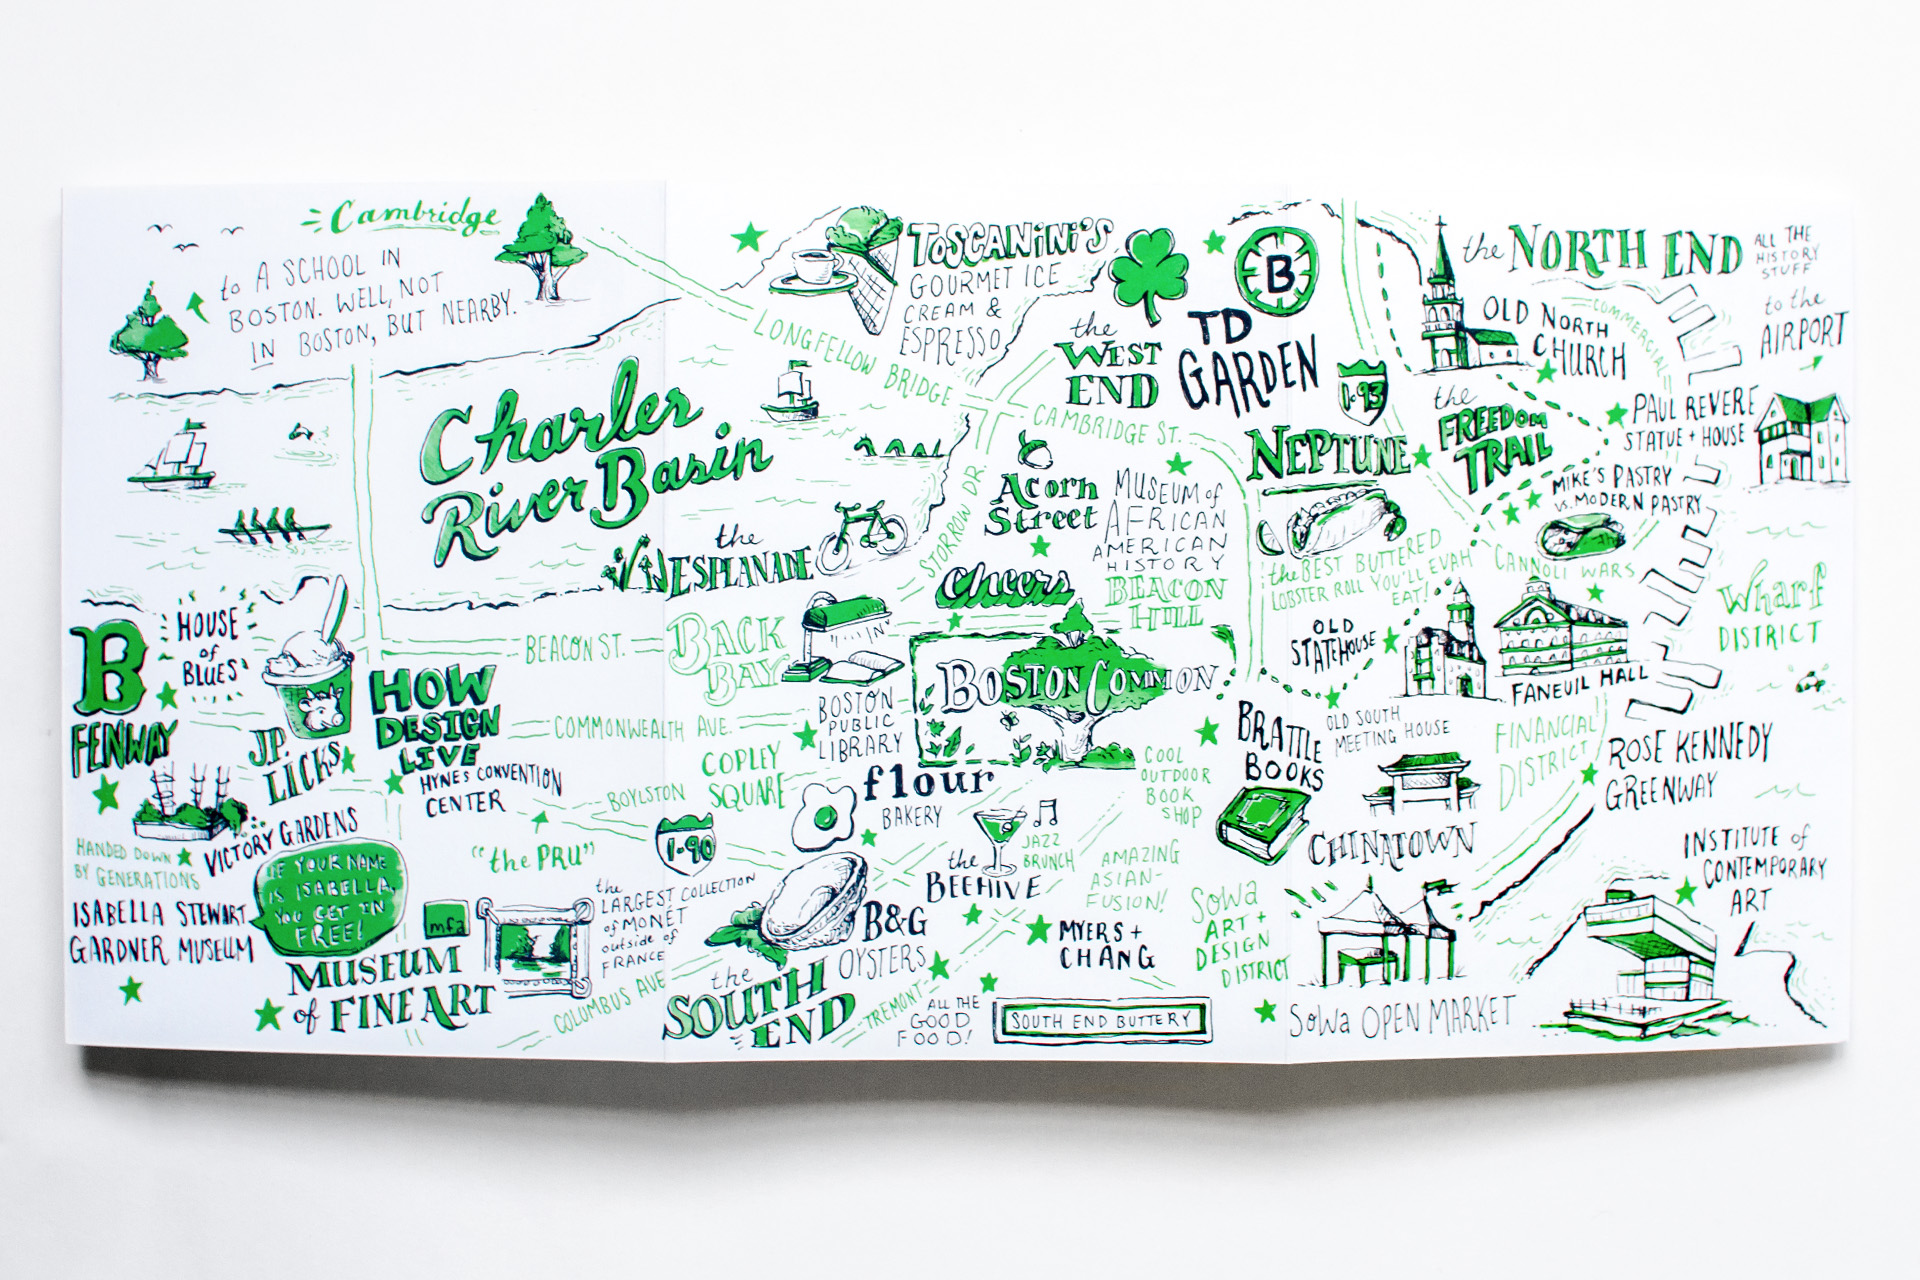 Full illustrated map of downtown Boston created by freelance artist Russell Shaw for Neenah Paper at HOW Design Live 2018 in Boston, shows Charles River Basin, the Esplanade, Fenway, JP Licks, Victory Gardens, Isabella Stewart Gardner Museum, Museum of Fine Arts, Copley Square, the Pru, Flour, B&G Oysters, the Beehive, the South End, South End Buttery, Myers and Chang, Brattle Books, SoWa, Boston Public Library, Boston Common, Cheers Bar, Acorn Street, Museum of African American History, the West End, Toscanini's, TD Garden,, Neptune, the Freedom Trail, the North End, Old North Church, Paul Revere Statue and House, Mike's Pastry, Modern Pastry, Chinatown, Rose Kennedy Greenway, the Institute of Contemporary Art.